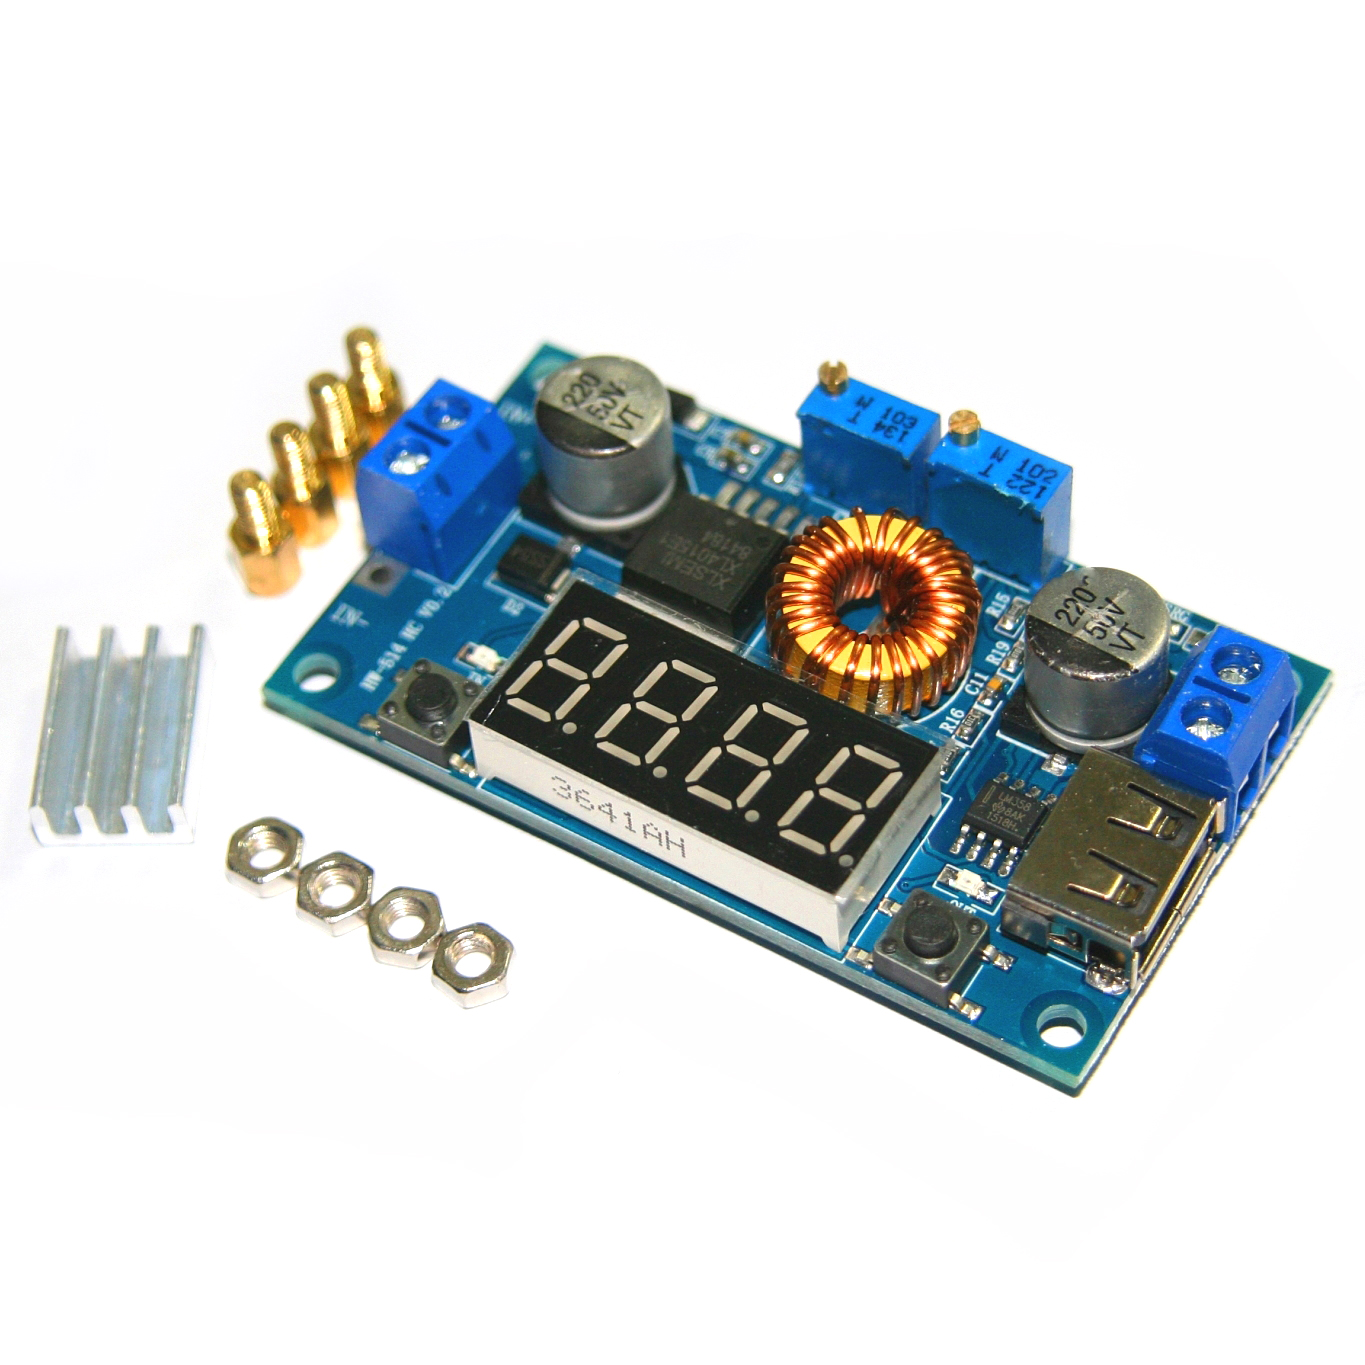 dc dc 5a digital led drive lithum battery charger module cc cv usb step down buck converter with voltmeter ammeter in integrated circuits from electronic  [ 1365 x 1365 Pixel ]